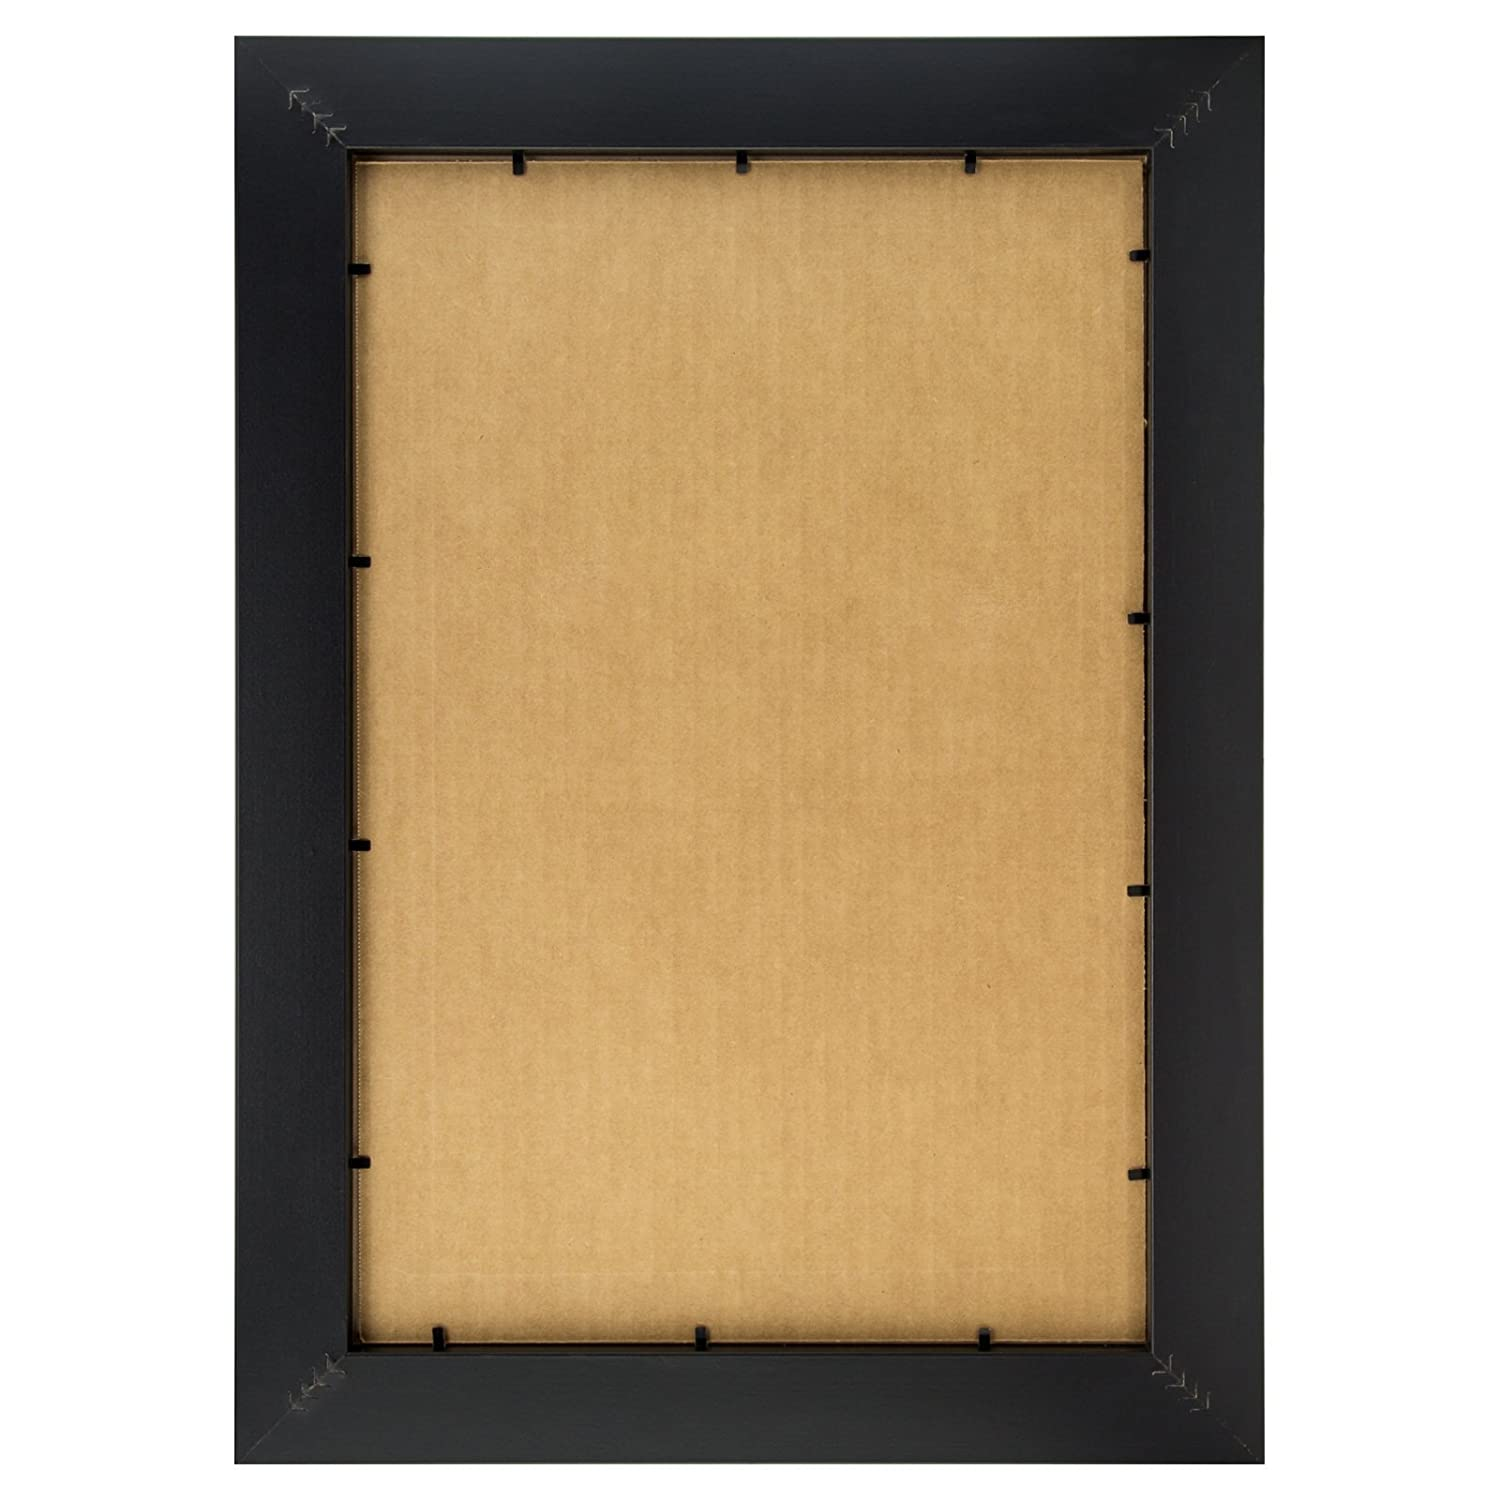 Raw Natural Finish Craig Frames 78673000 4 by 6-Inch Picture Frame Solid Wood 1.8-Inches Wide